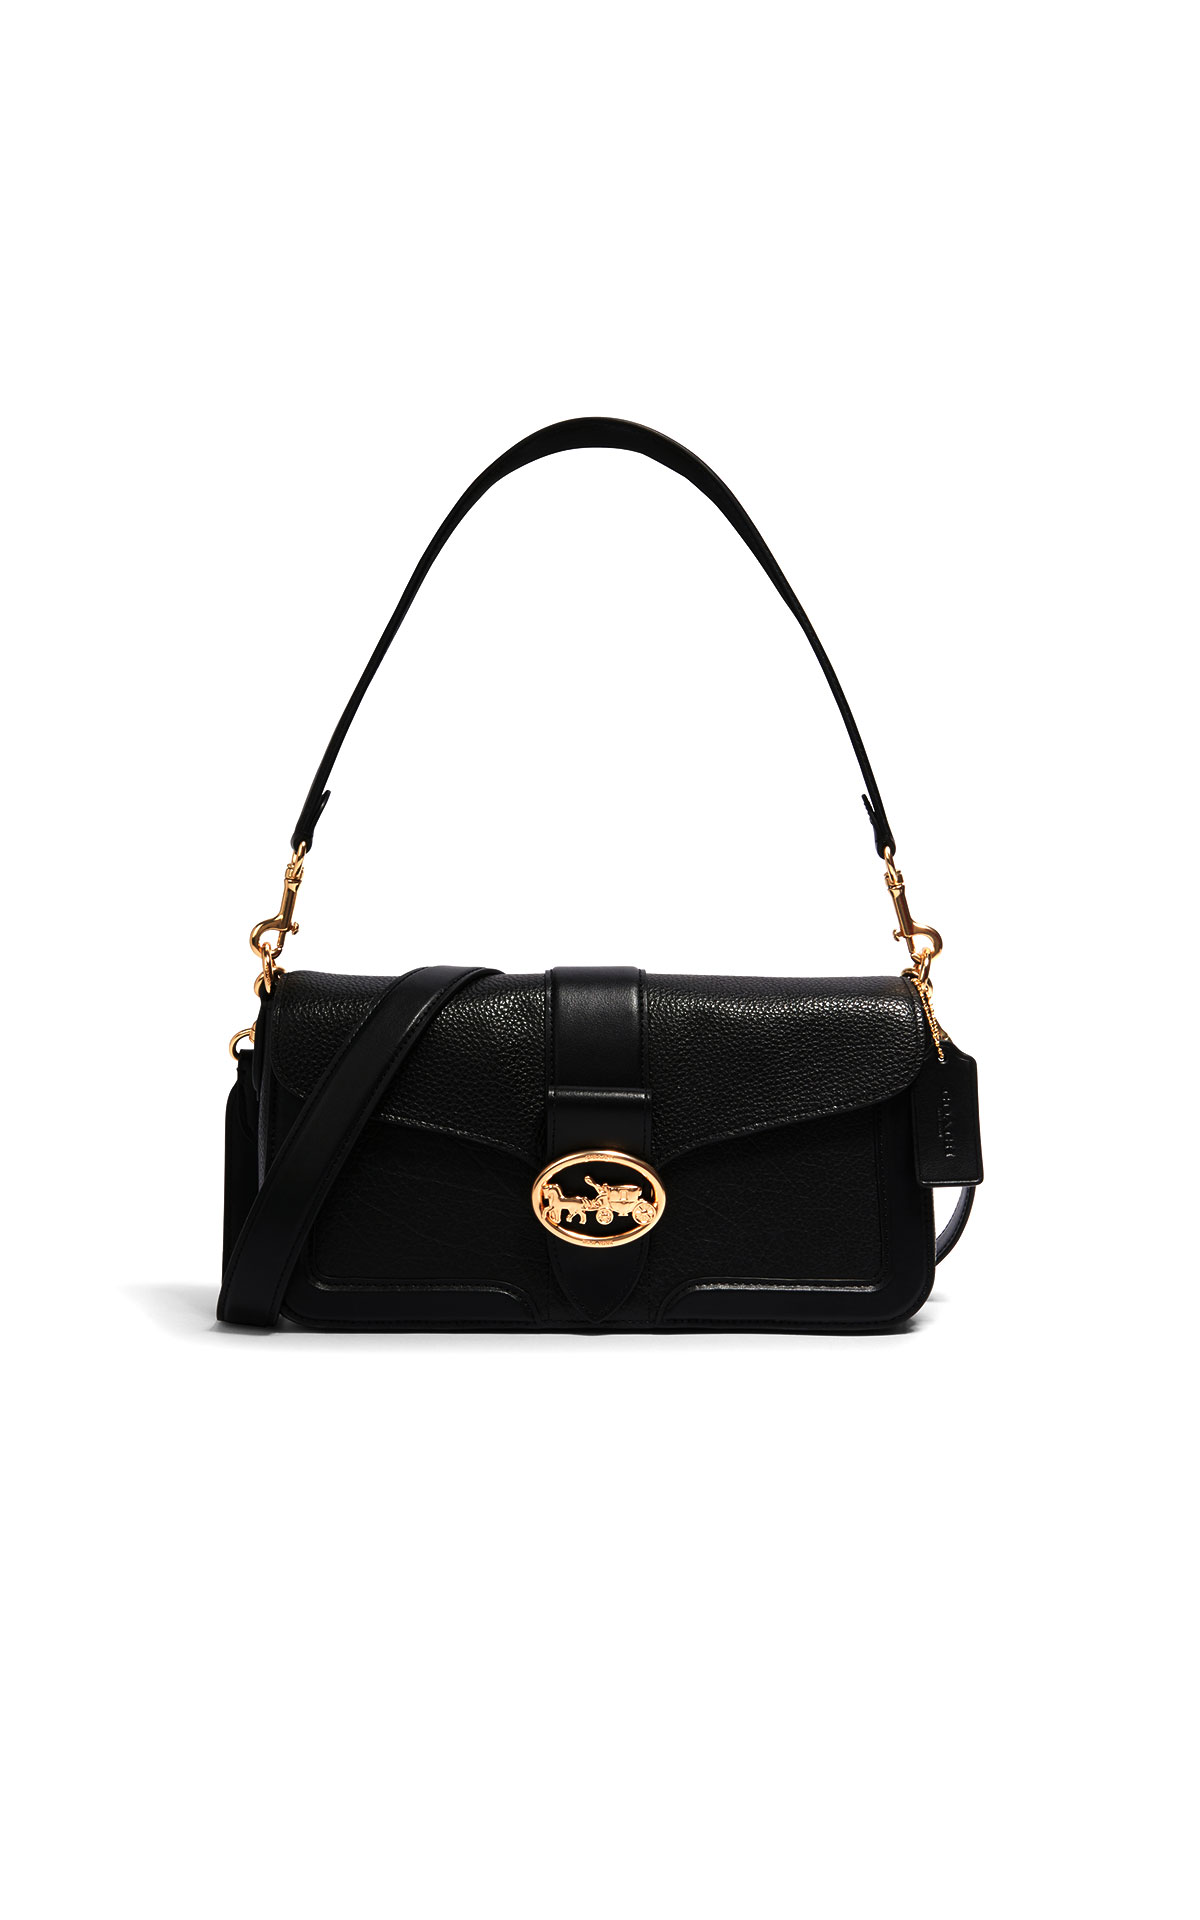 Coach georgie shoulder bag at The Bicester Village Shopping Collection